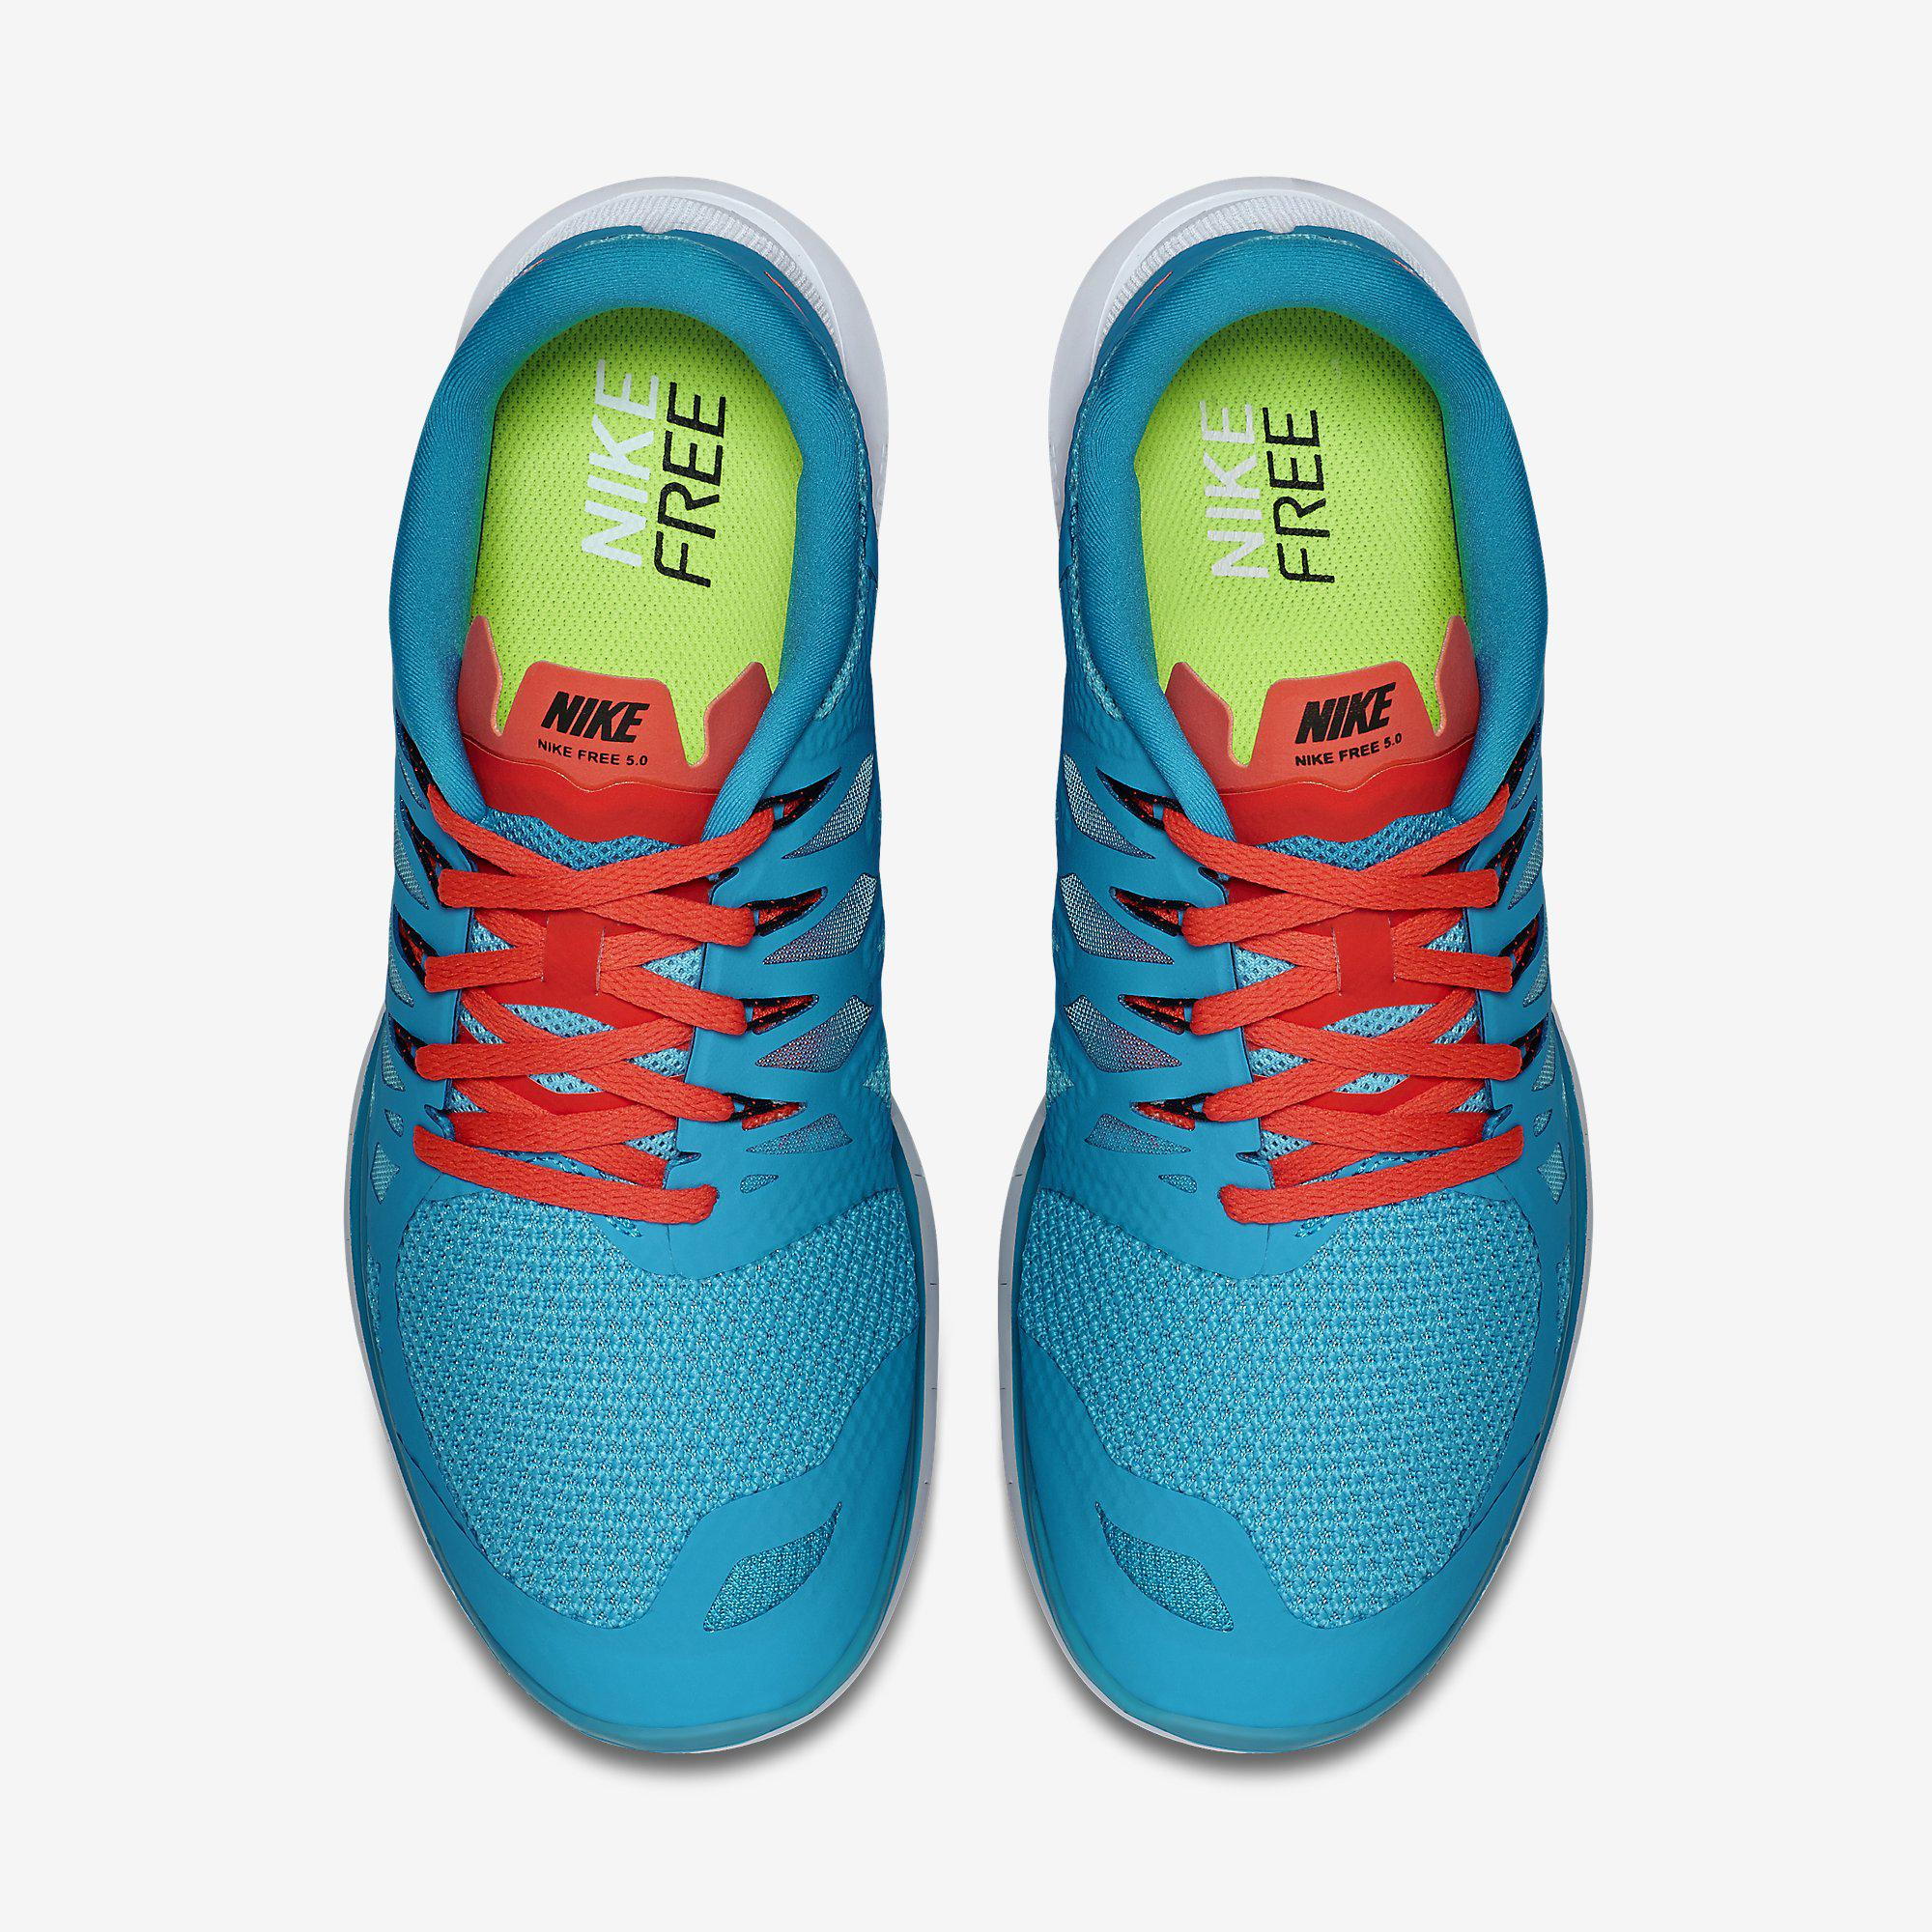 4a8f07c3c125 ... release date nike mens free 5.0 running shoes blue lagoon bright  crimson 1944d 8054d